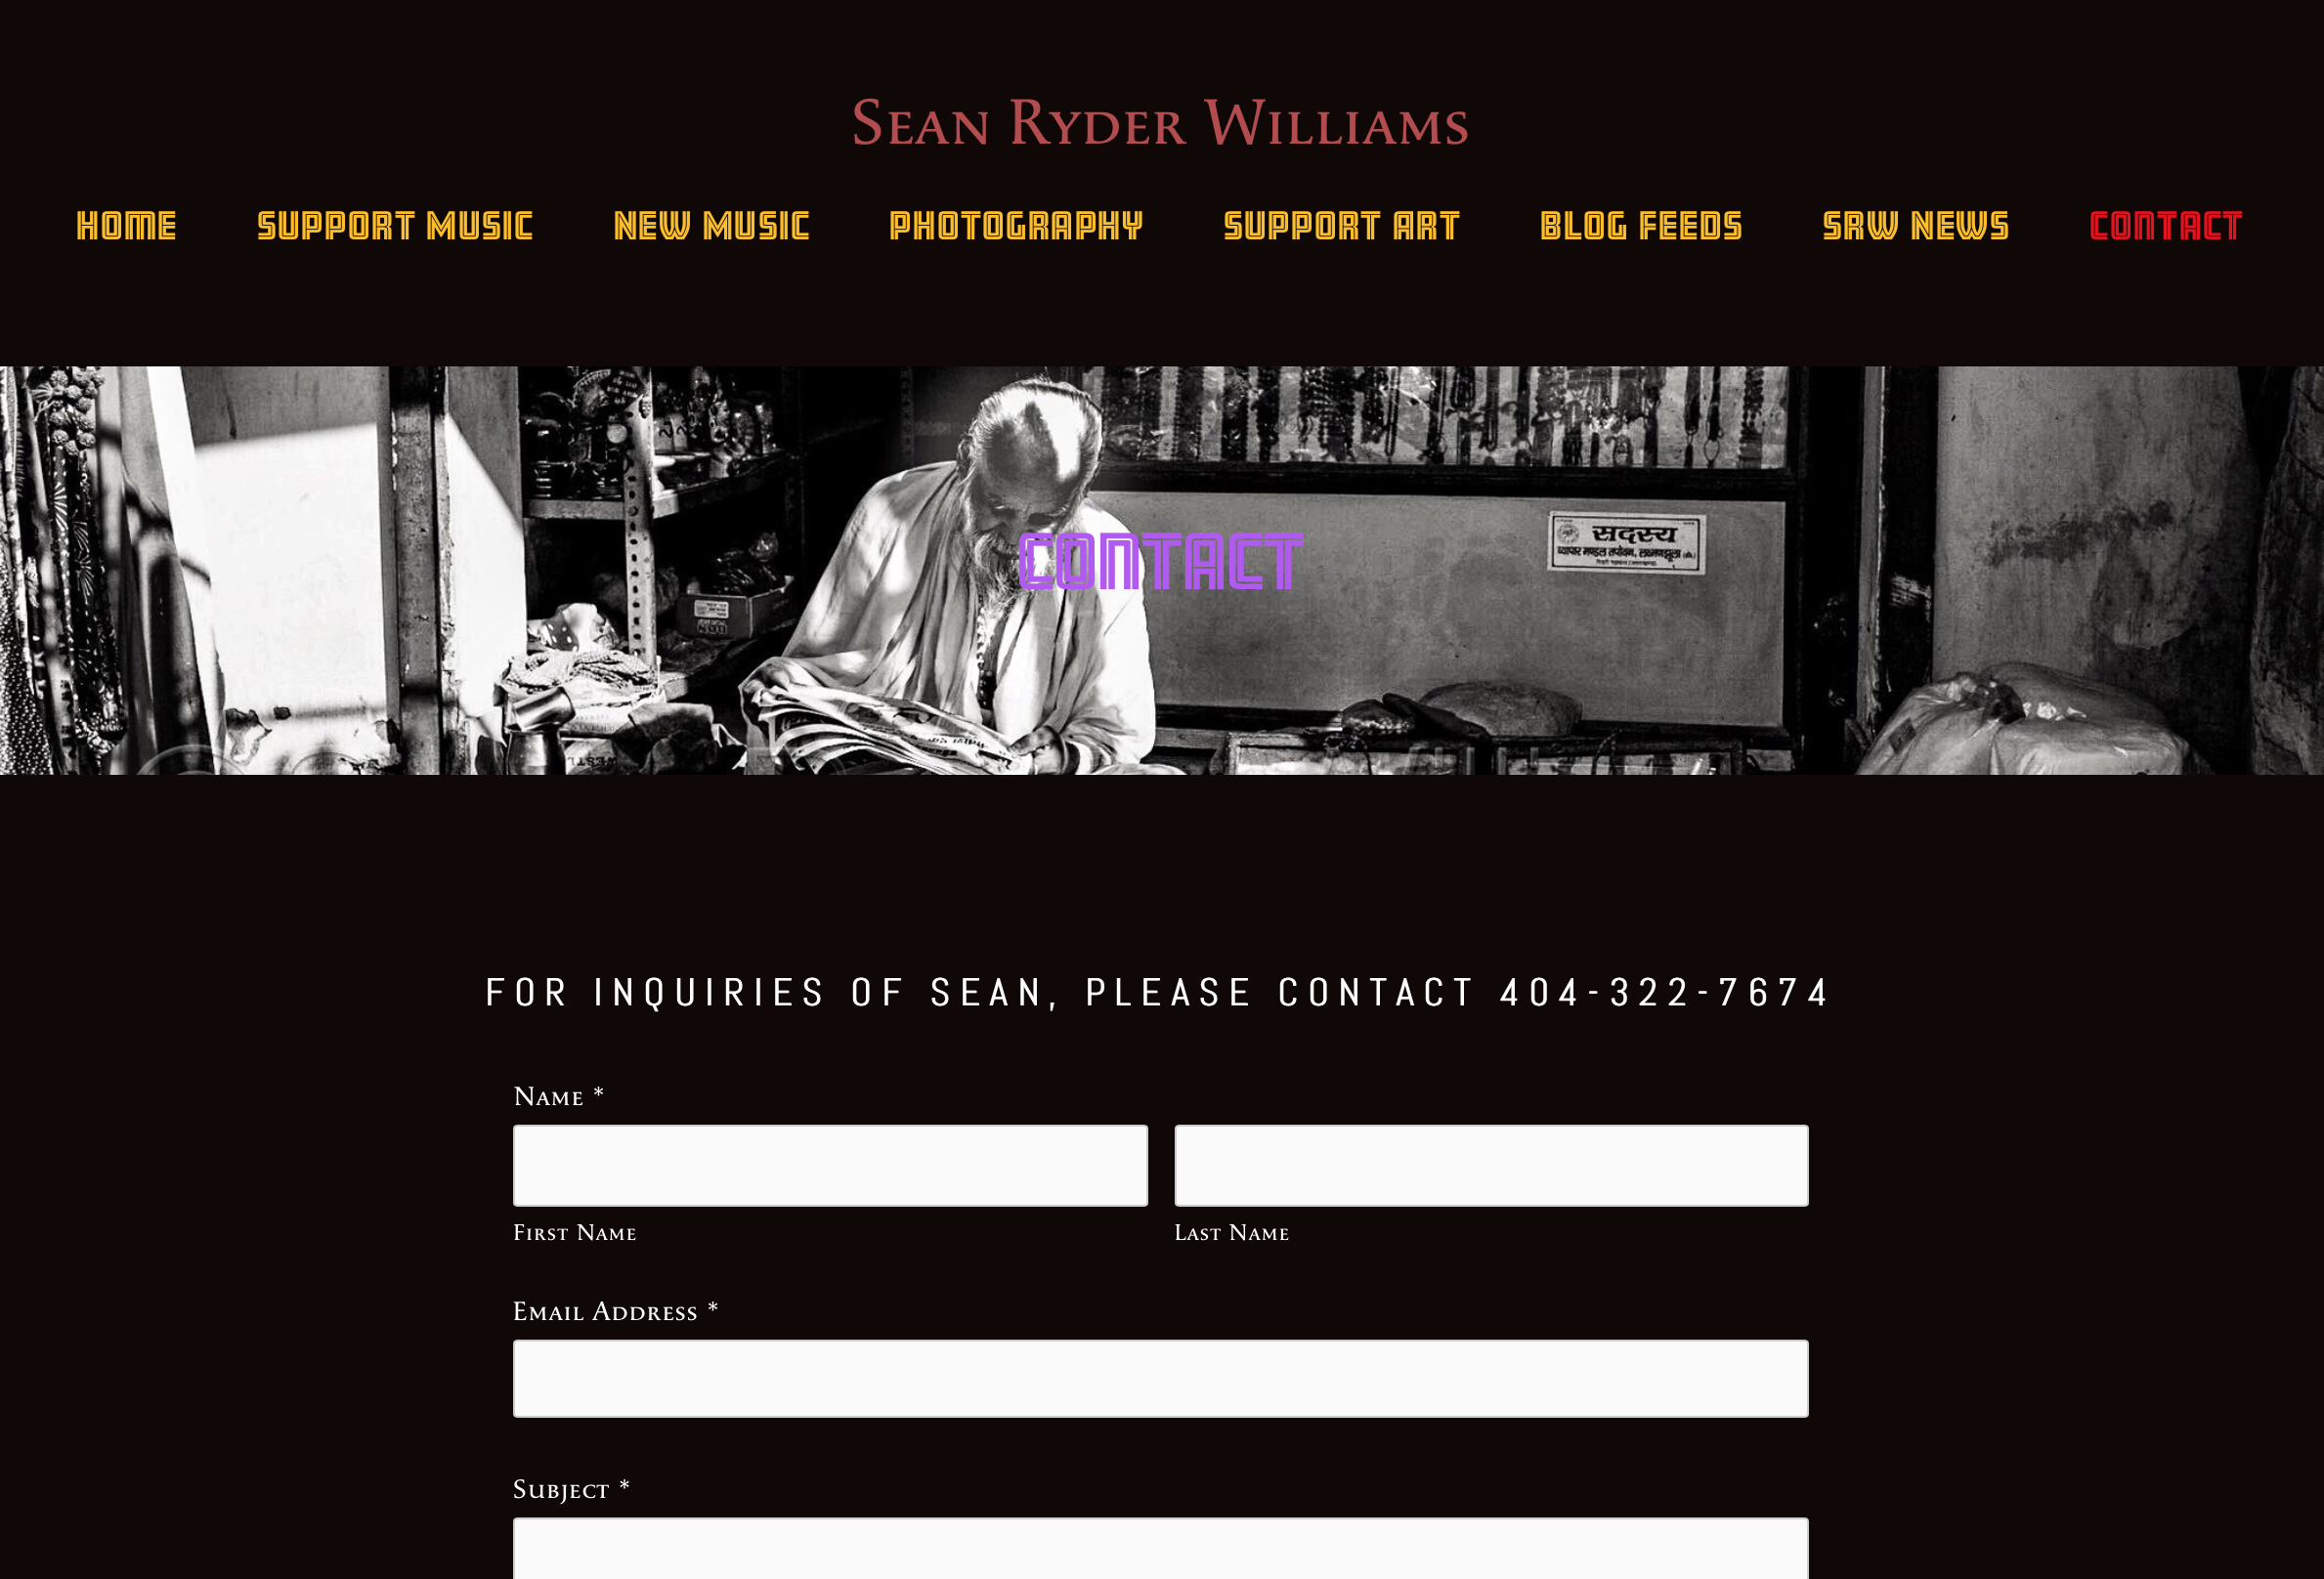 Sean_Ryder_Williams_Image_7.png